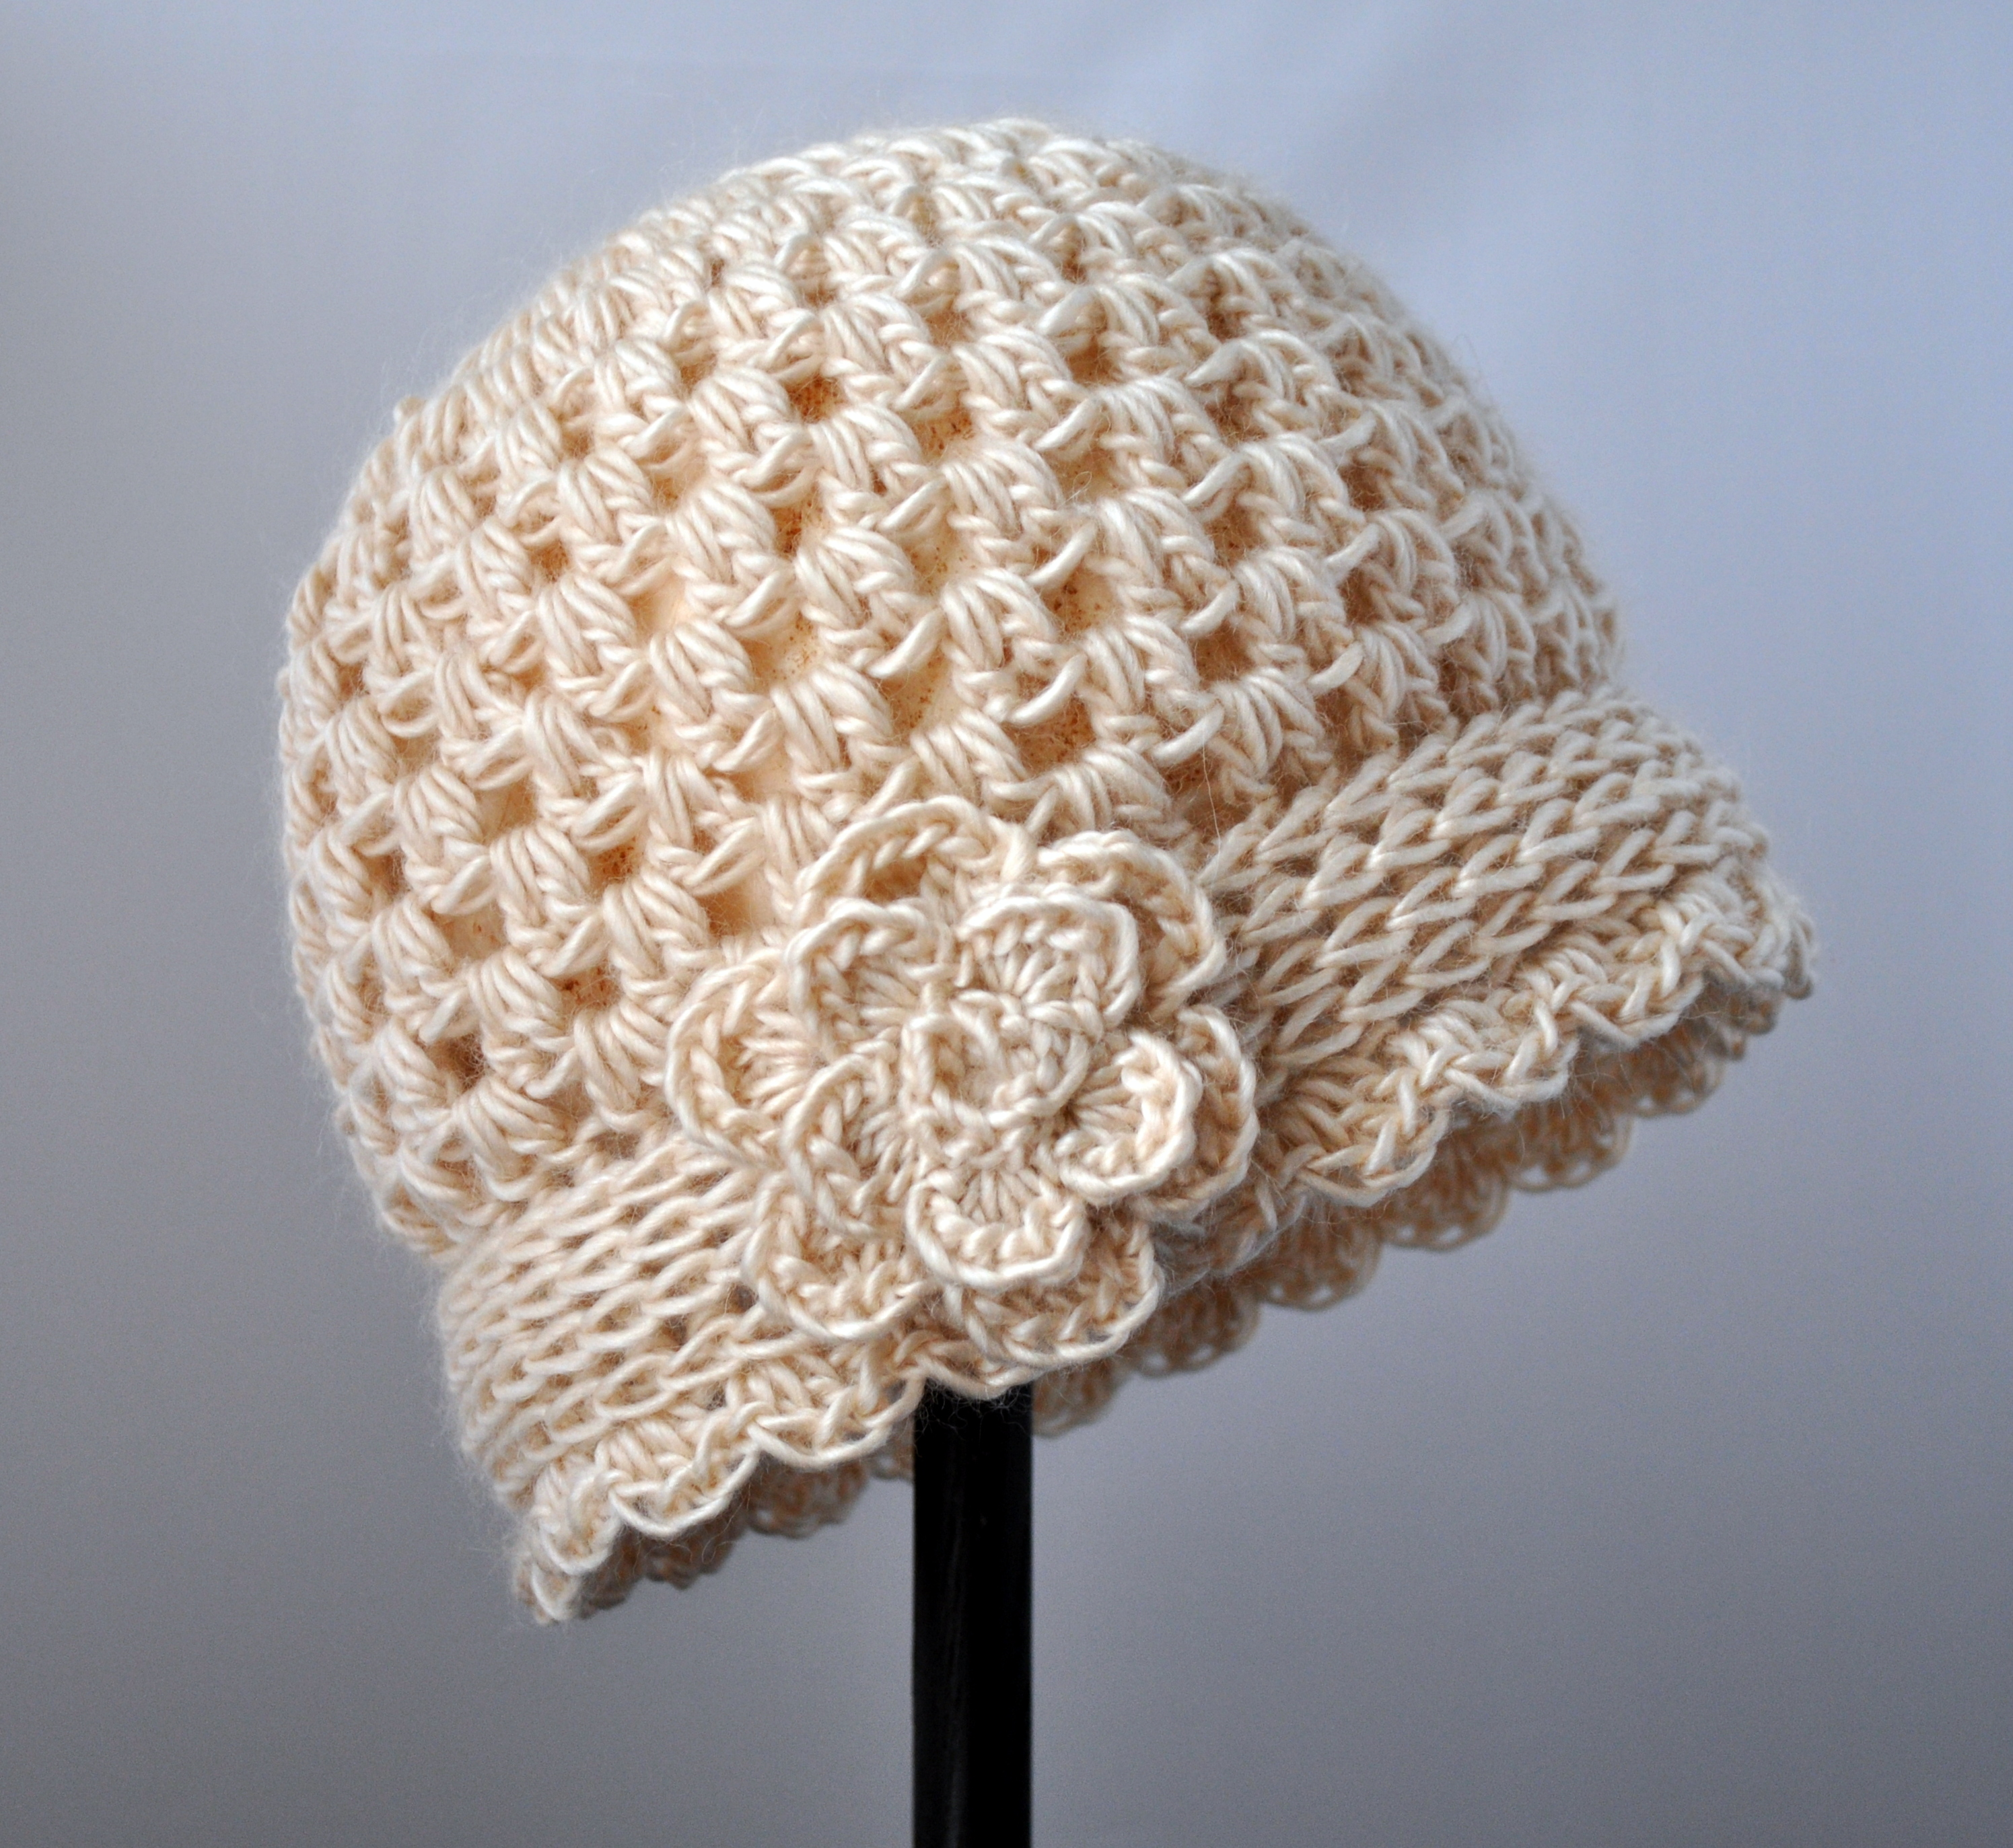 Crocheting Free Patterns : Crochet Patterns Classy Crochet